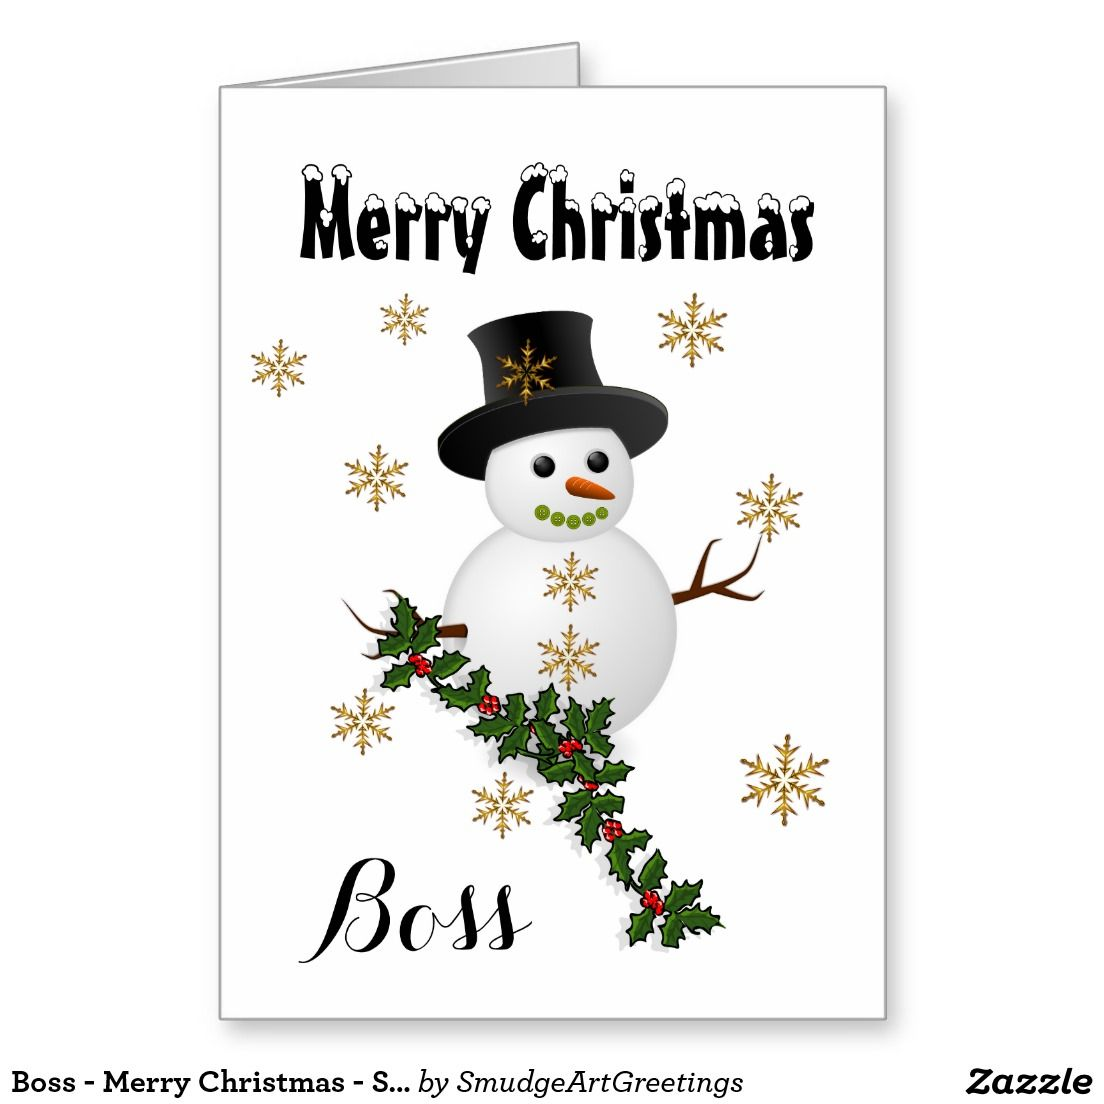 Boss - Merry Christmas - Snowman/Holly Greeting Card | Zazzle ...